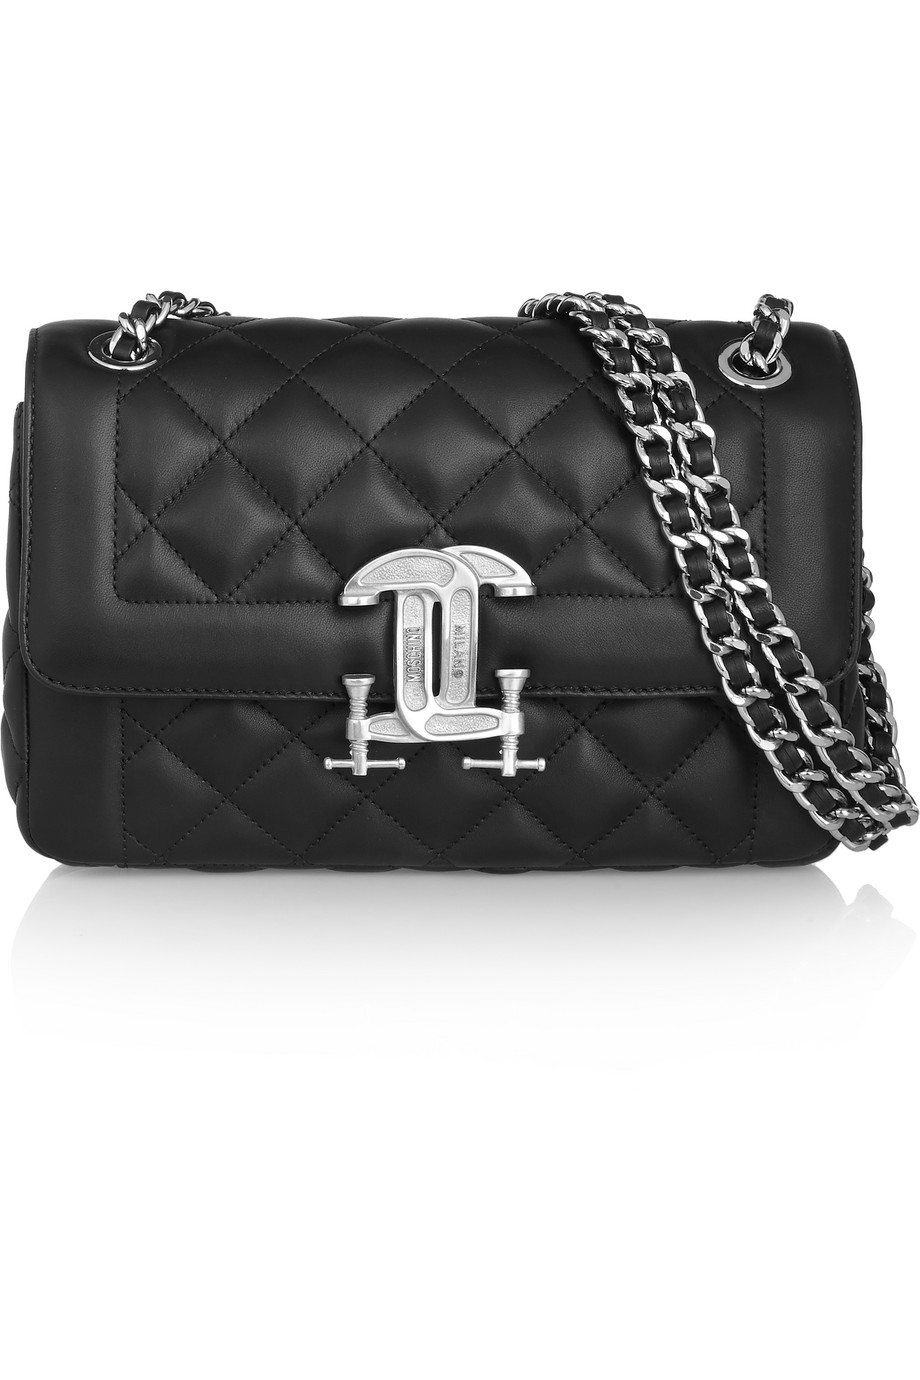 Moschino Quilted Leather Shoulder Bag, Black, Women's